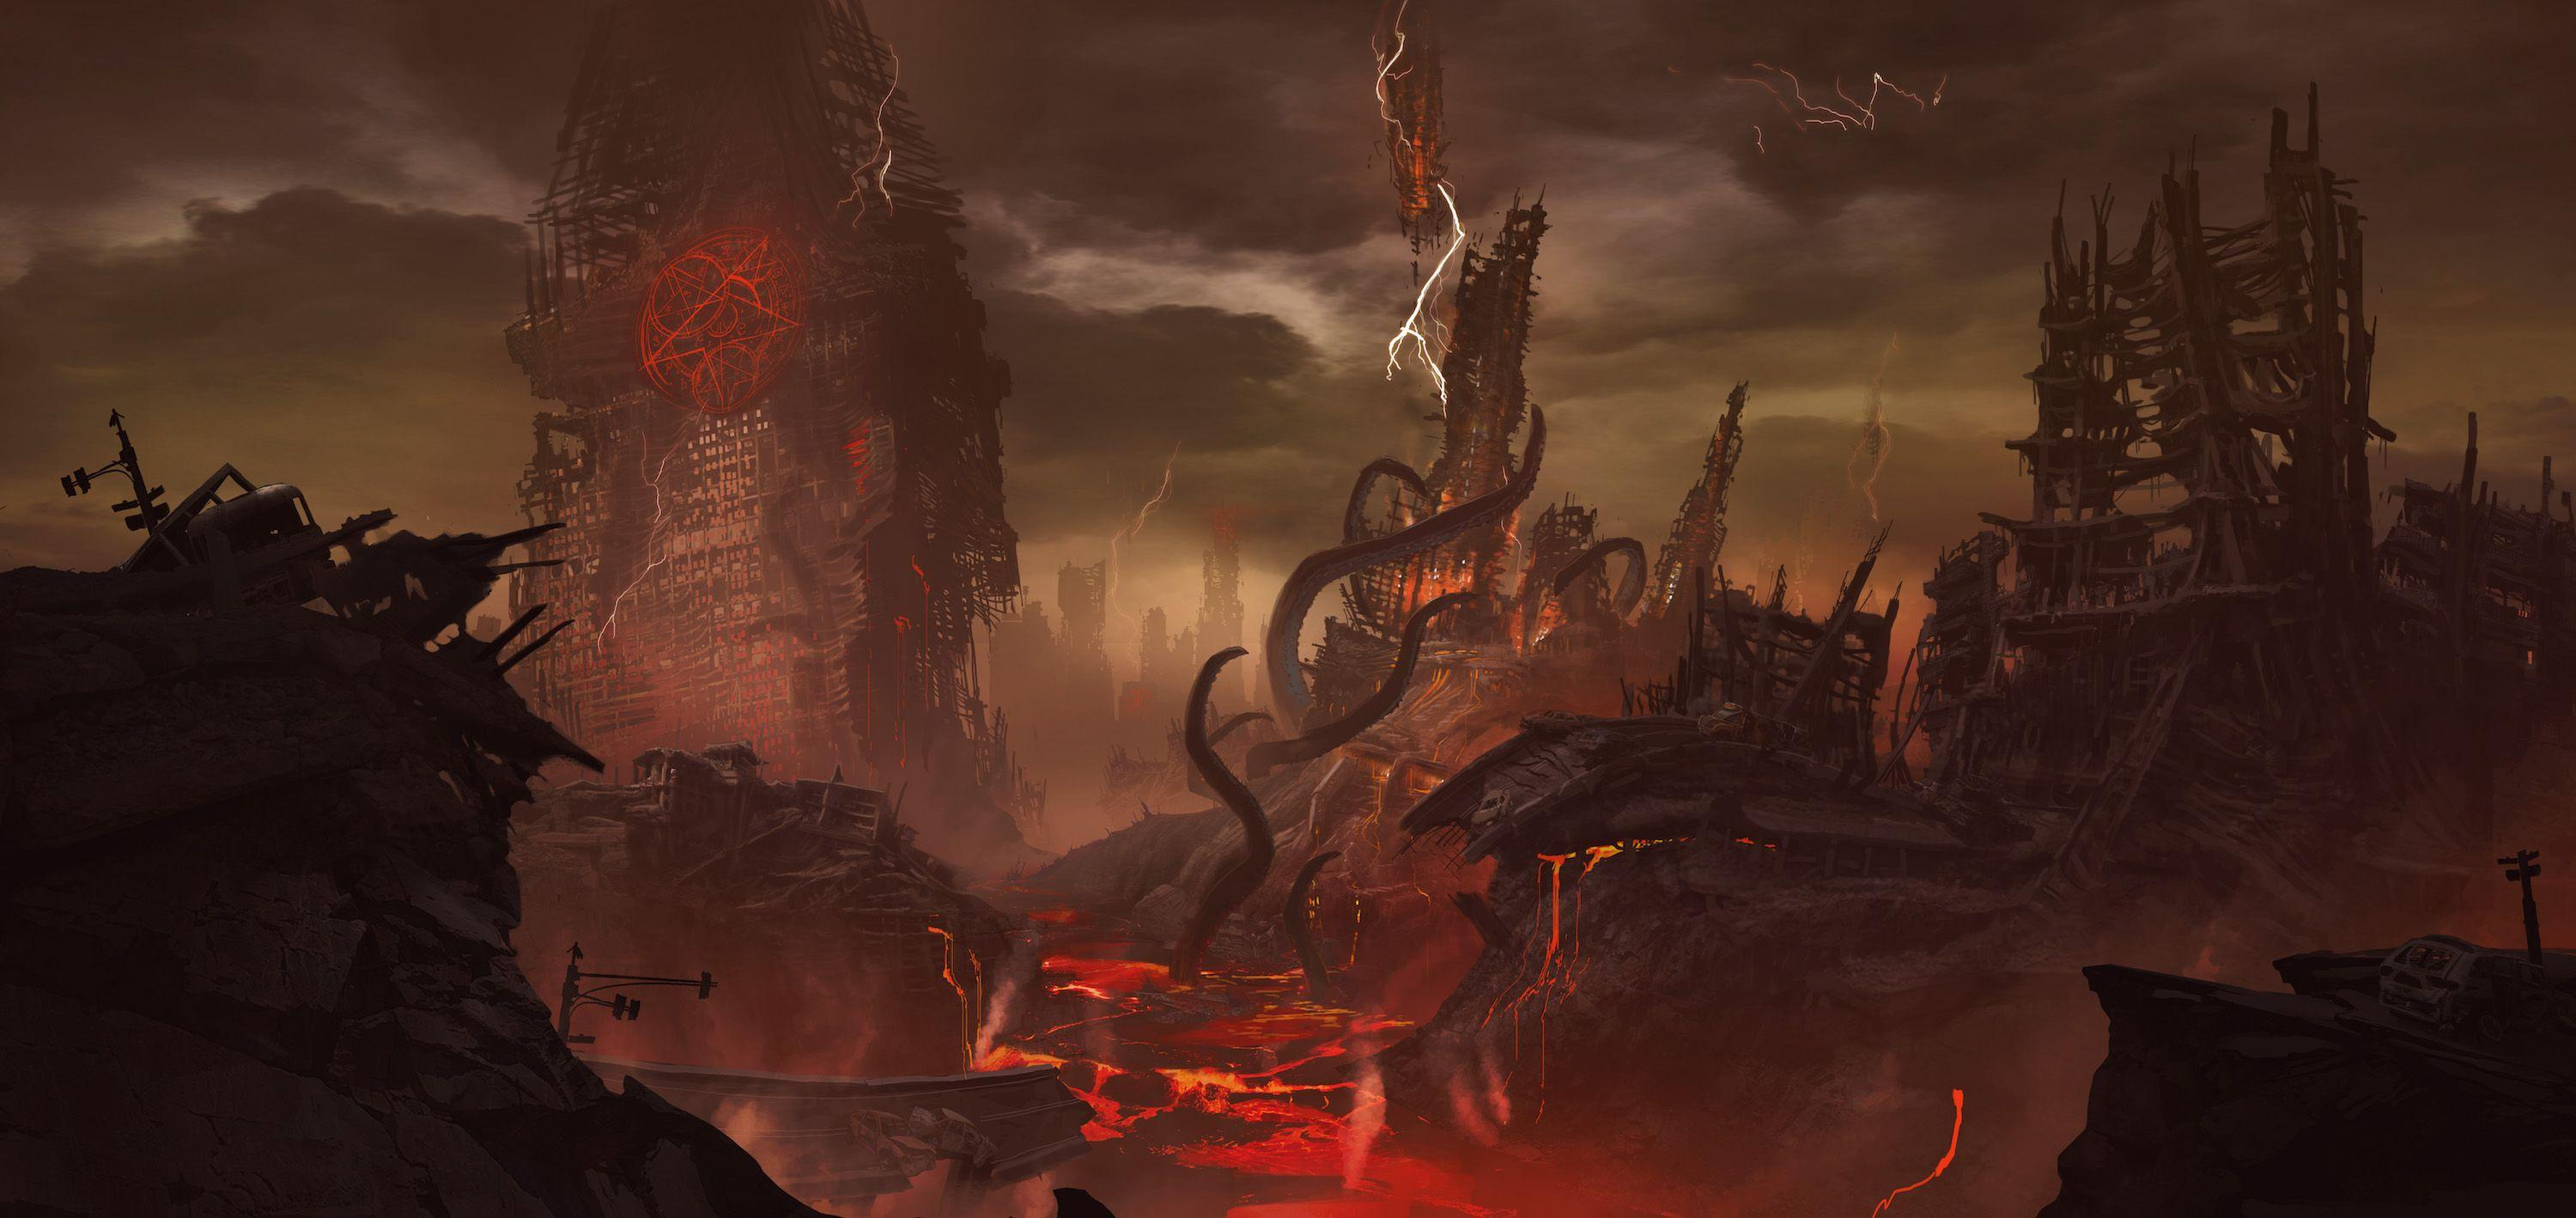 Doom Eternal Hd Wallpapers Wallpaper Cave